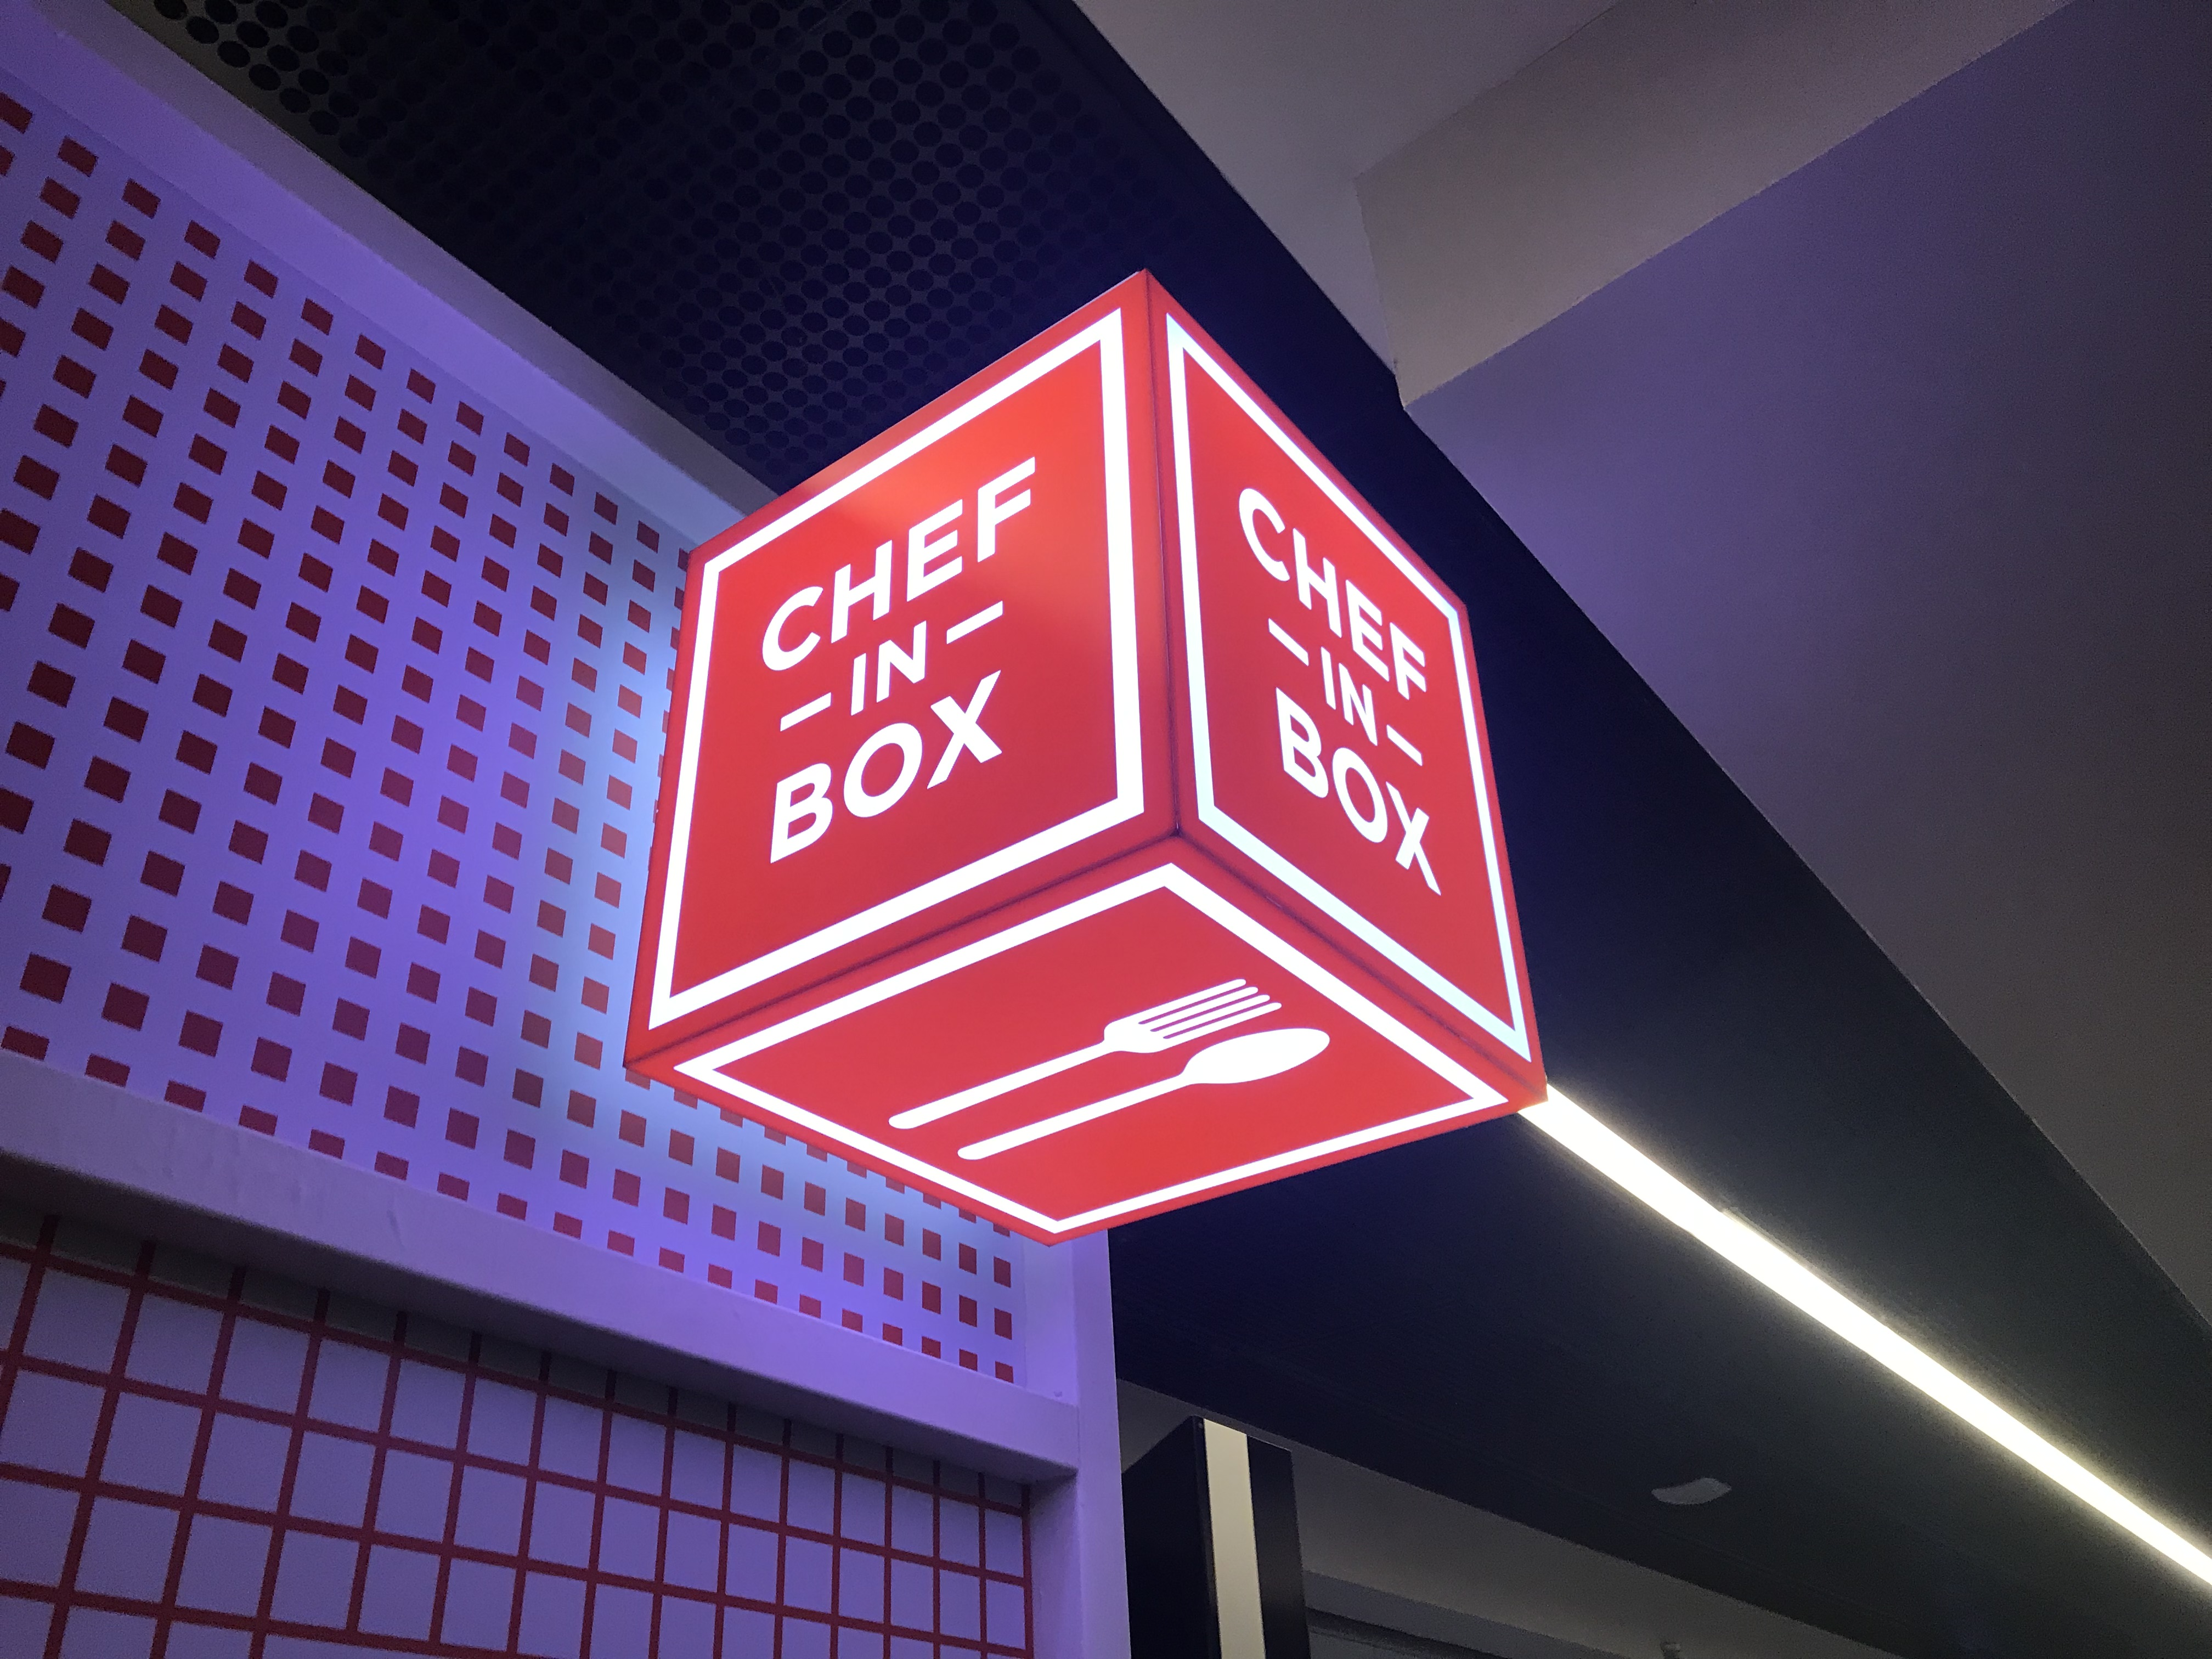 Enjoy World Class Food from Chef-In-Box Vending Machines! - Alvinology